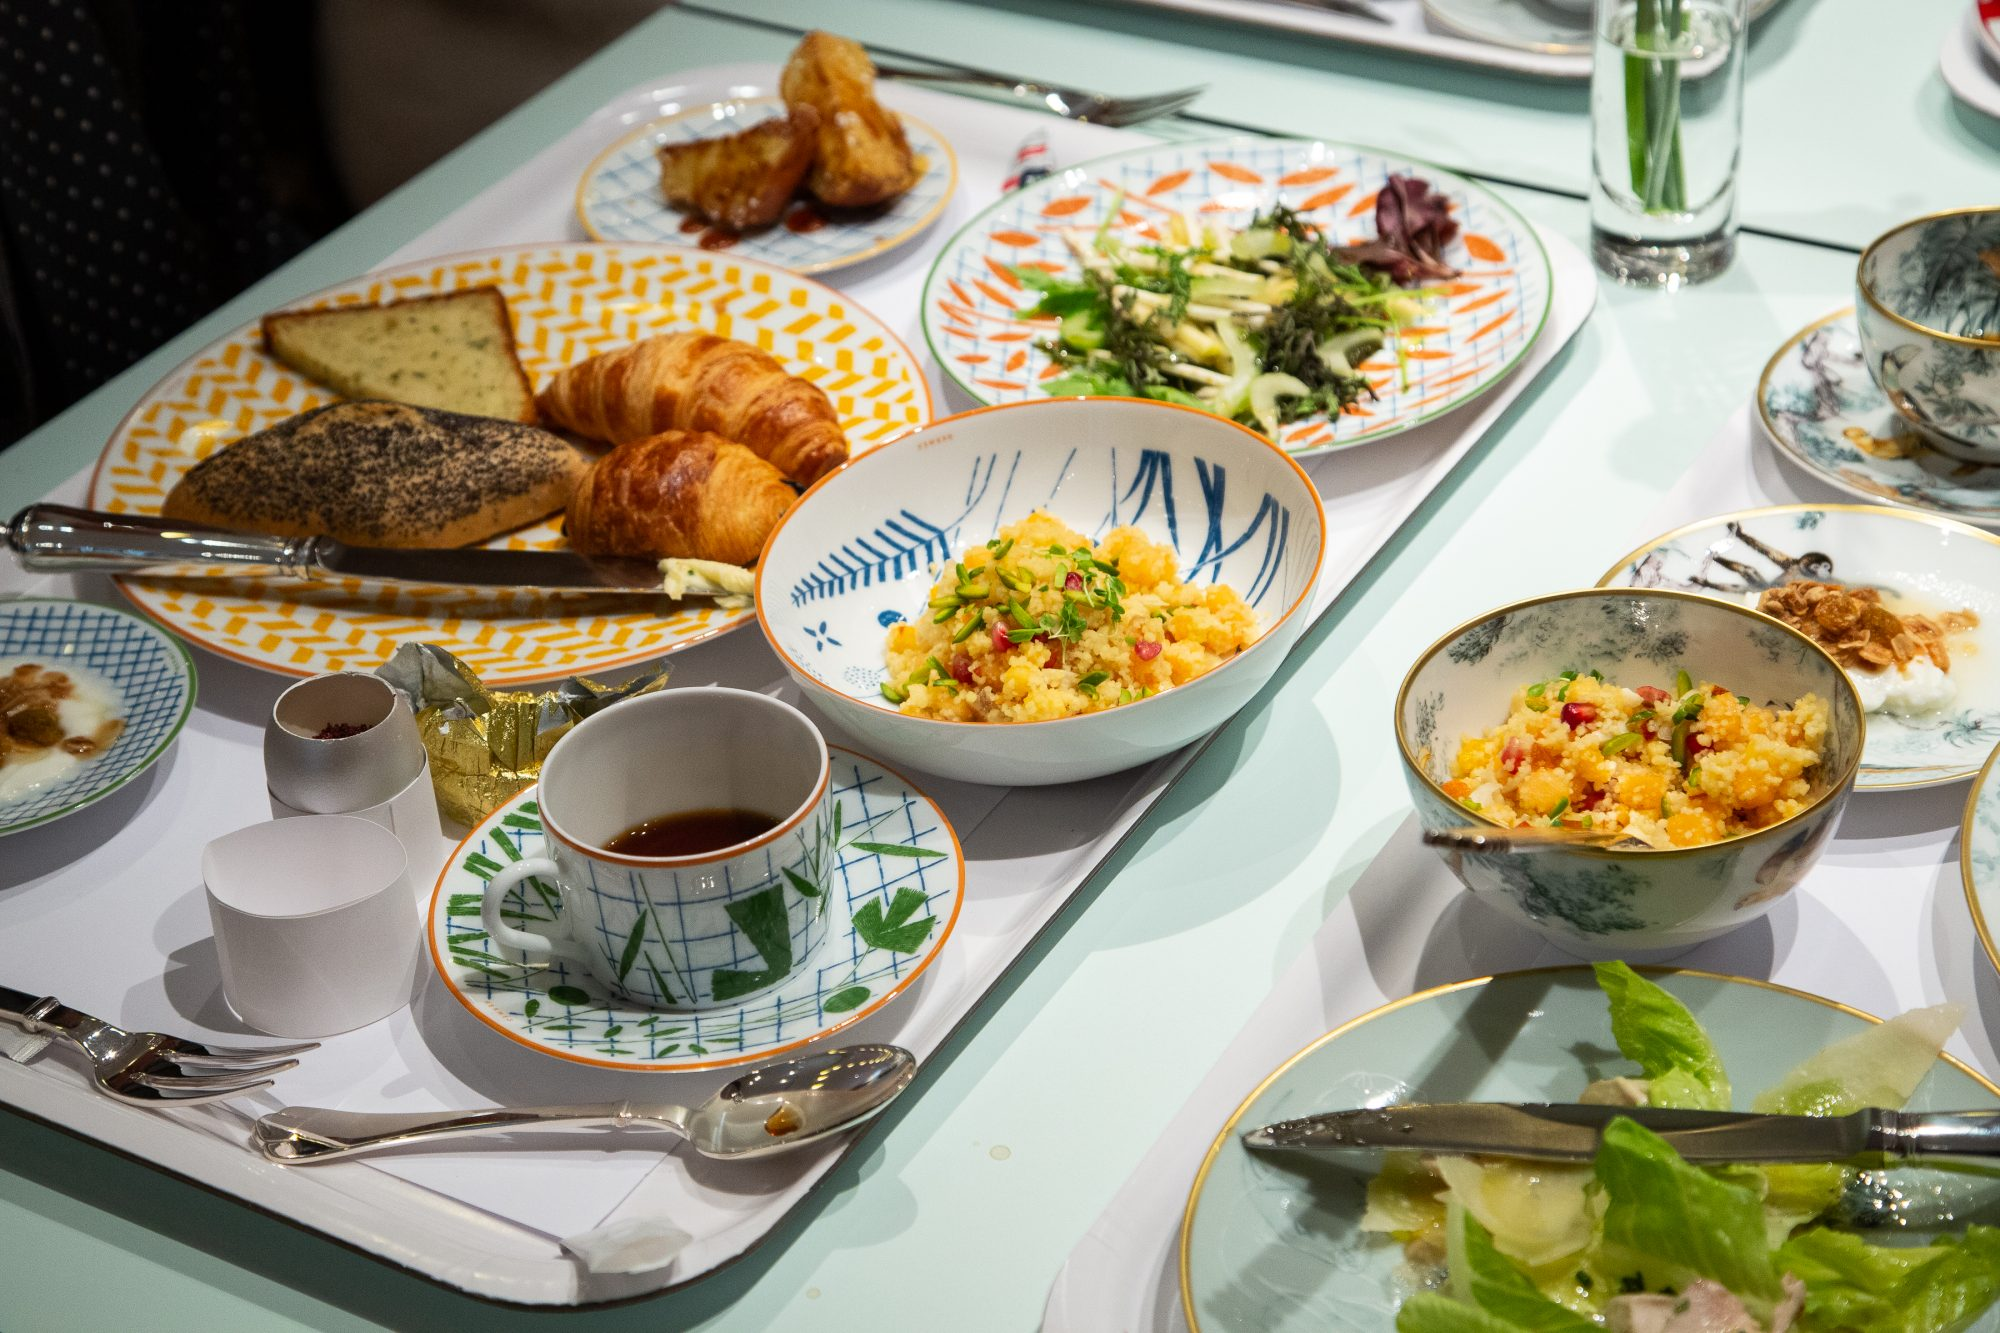 Hermès' New, 'Casual' Tableware Collection Is Full of Showstoppers